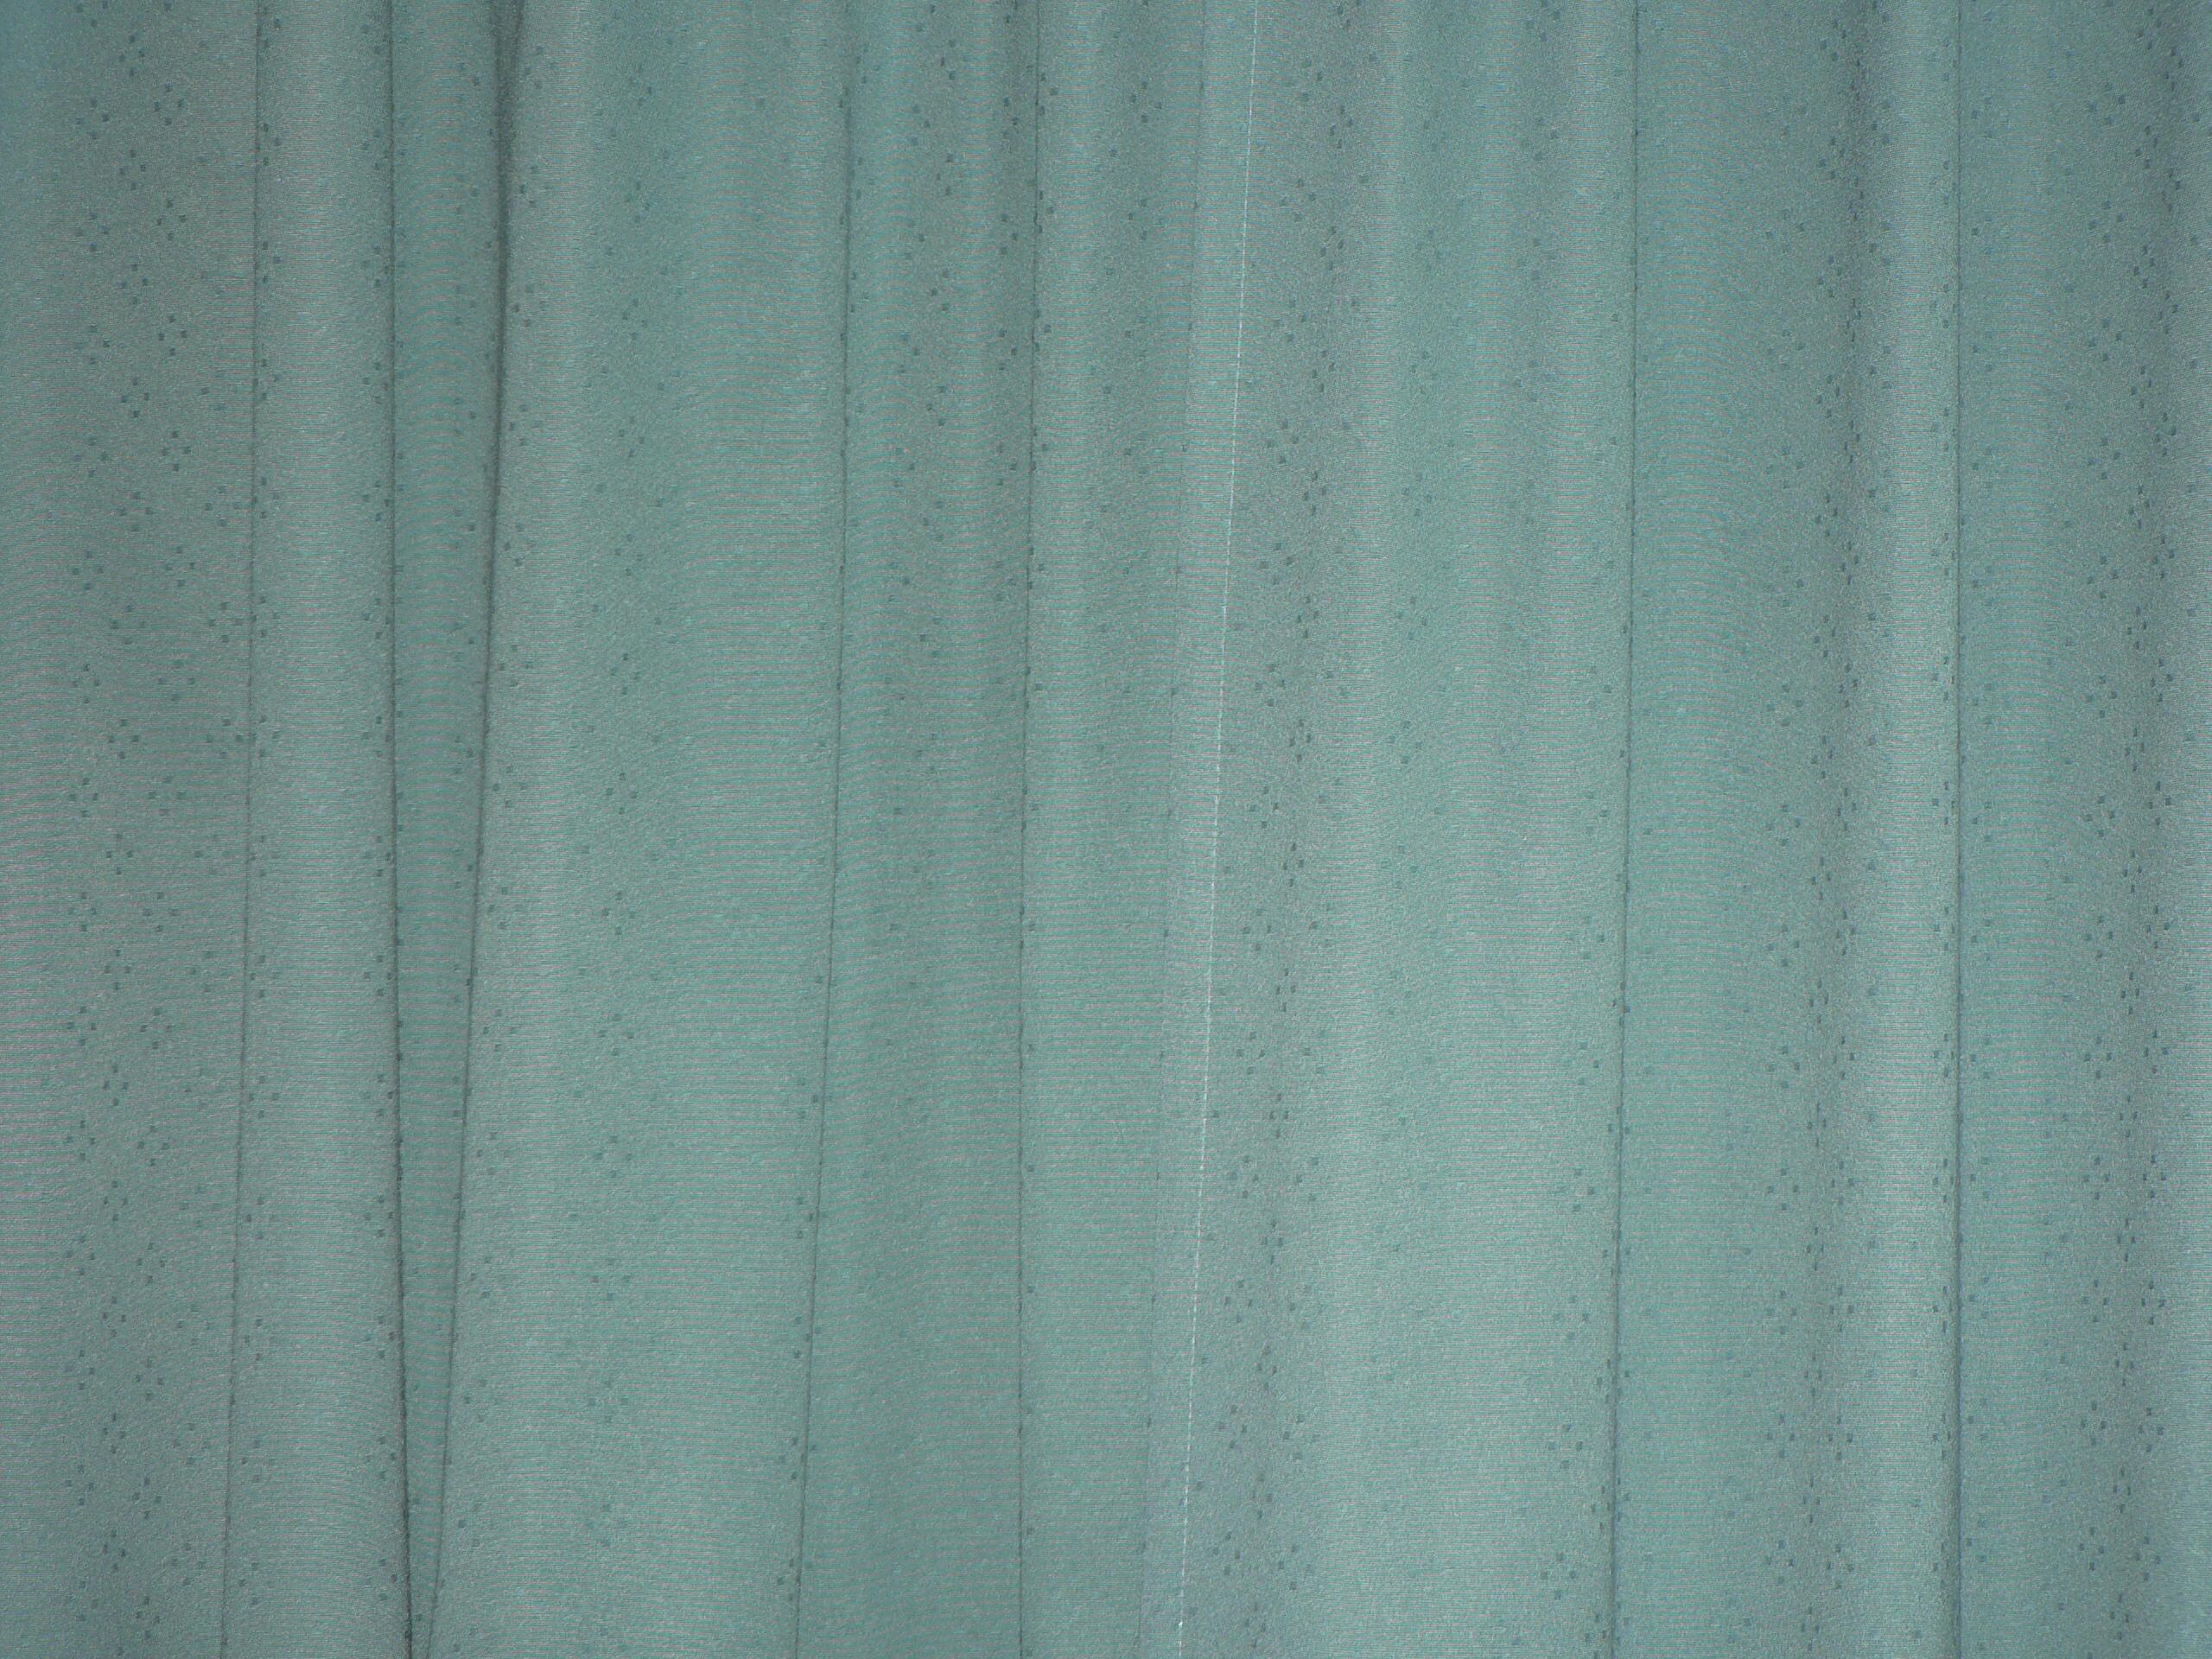 Plain Texture 02 by Textures-Galore on DeviantArt for Net Curtains Texture  174mzq